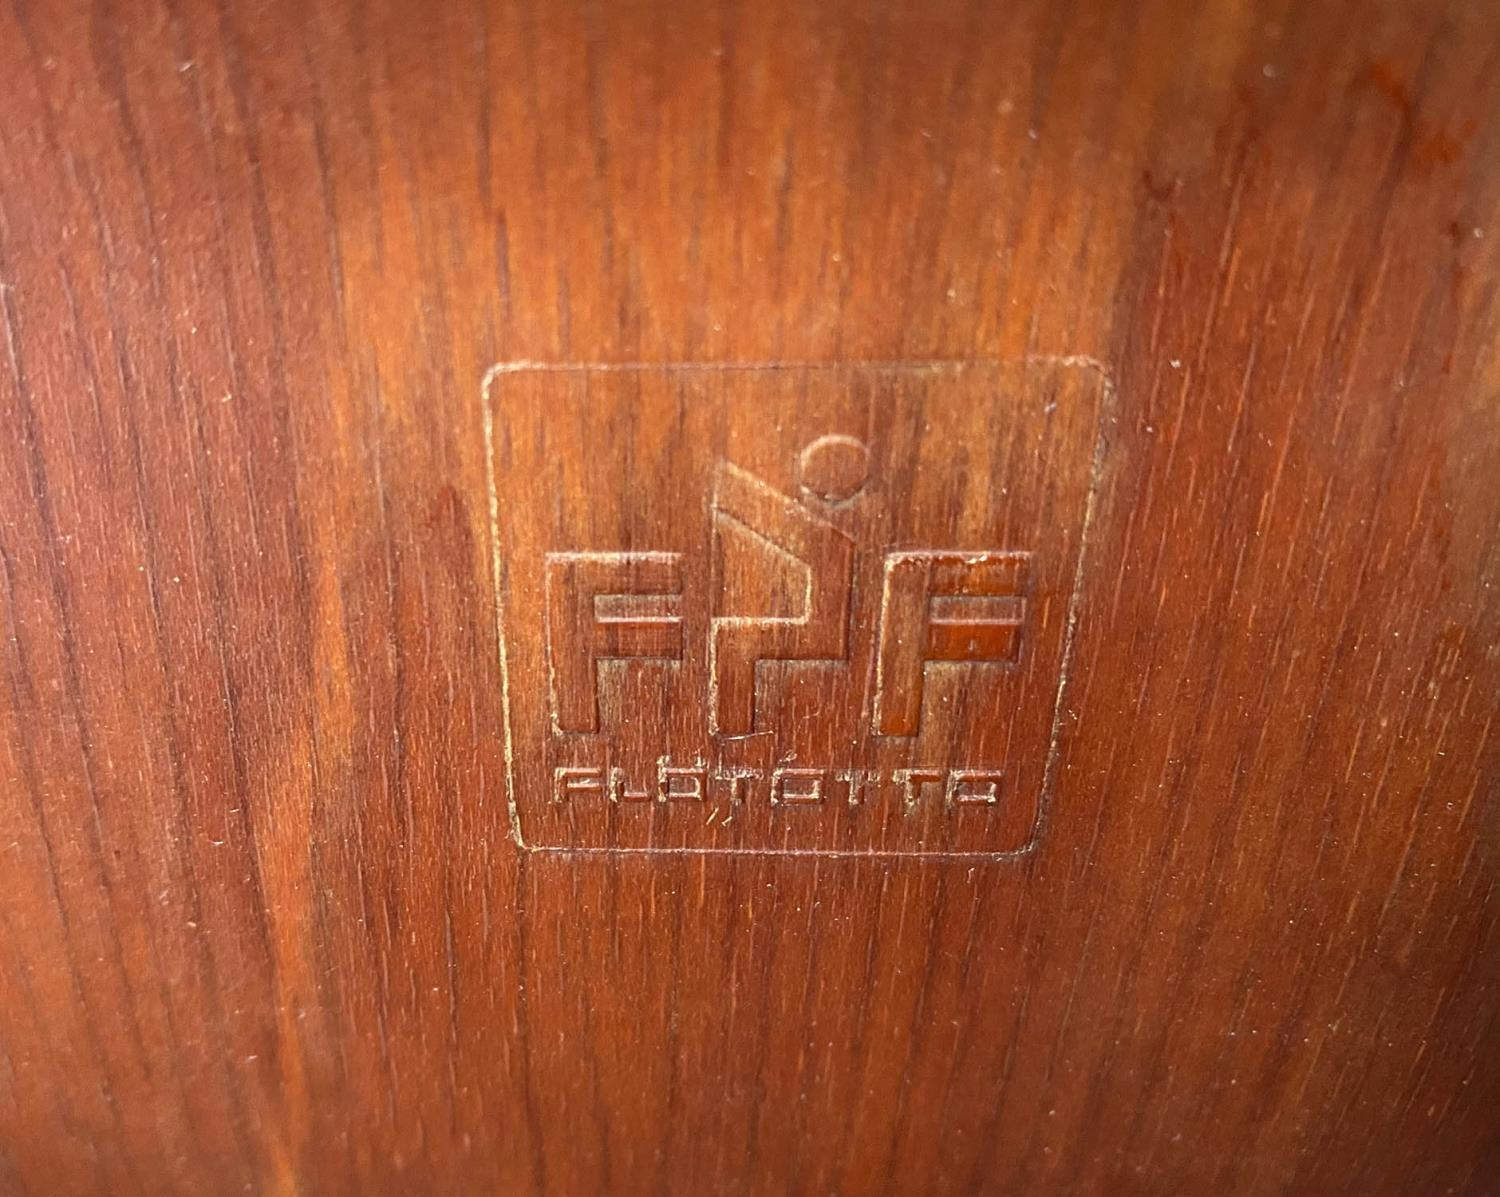 FLOTOTTO PAGHOLZ DINING CHAIRS, a set of five, by Elmar Flototto, 78cm H. (5) - Image 3 of 9